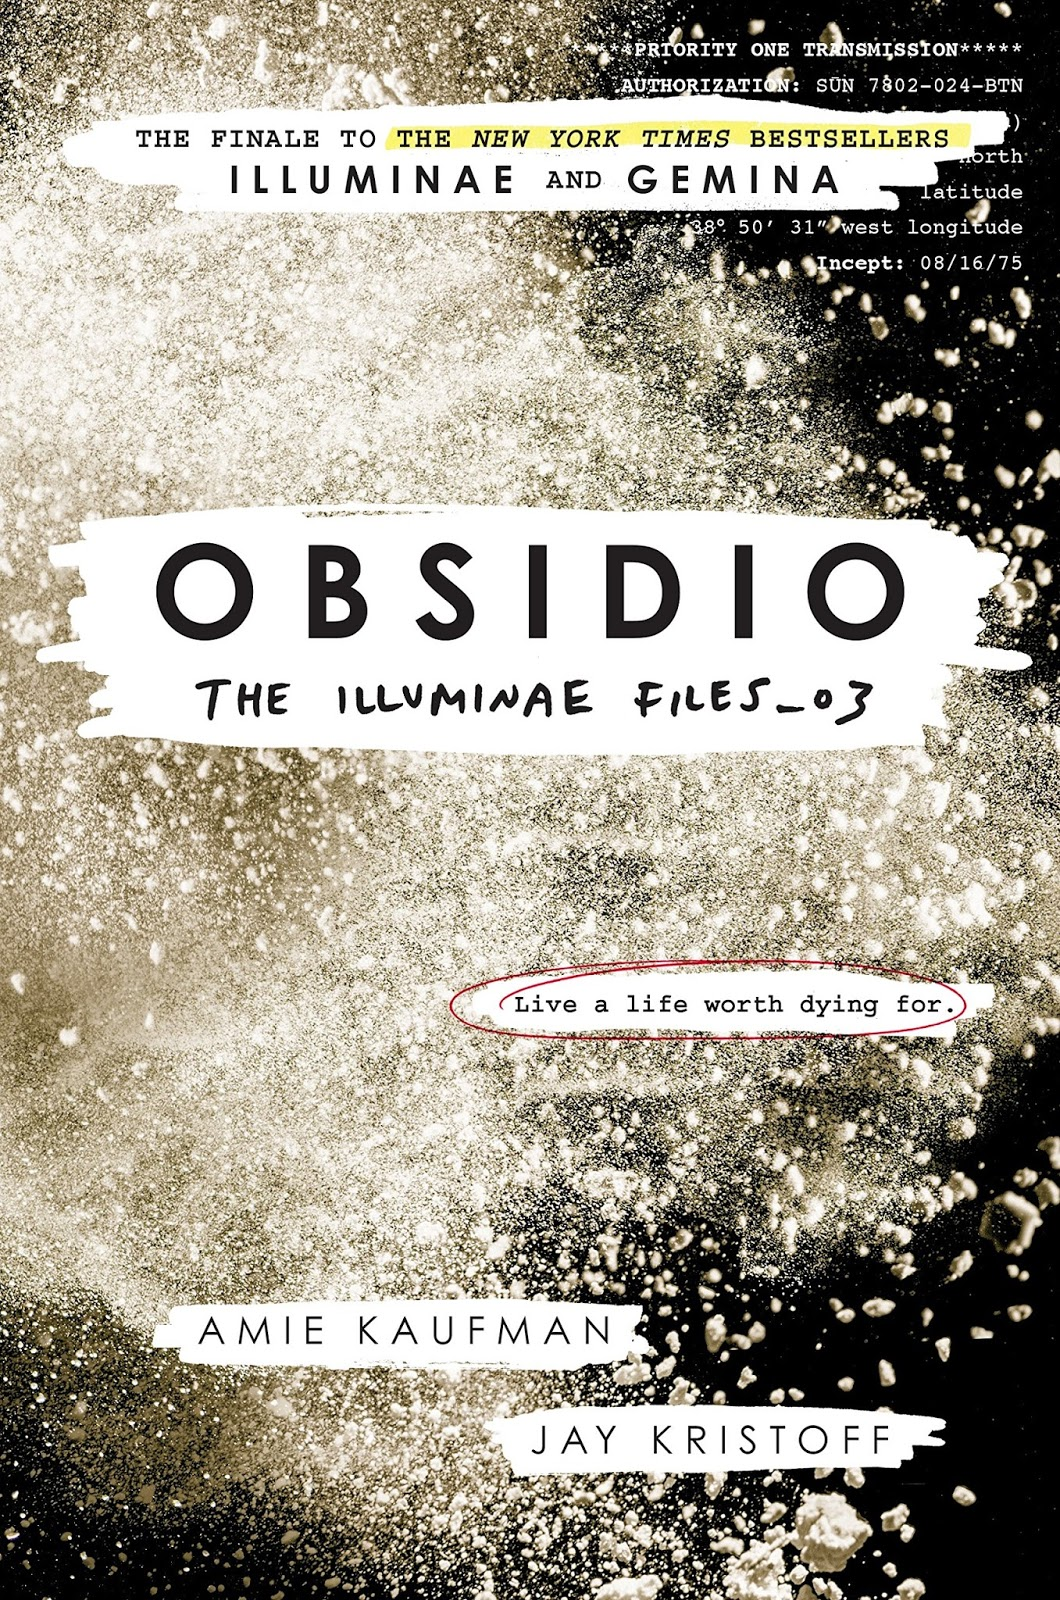 The Illuminae Files 03: Obsidio by Amie Kaufman and Jay Kristoff